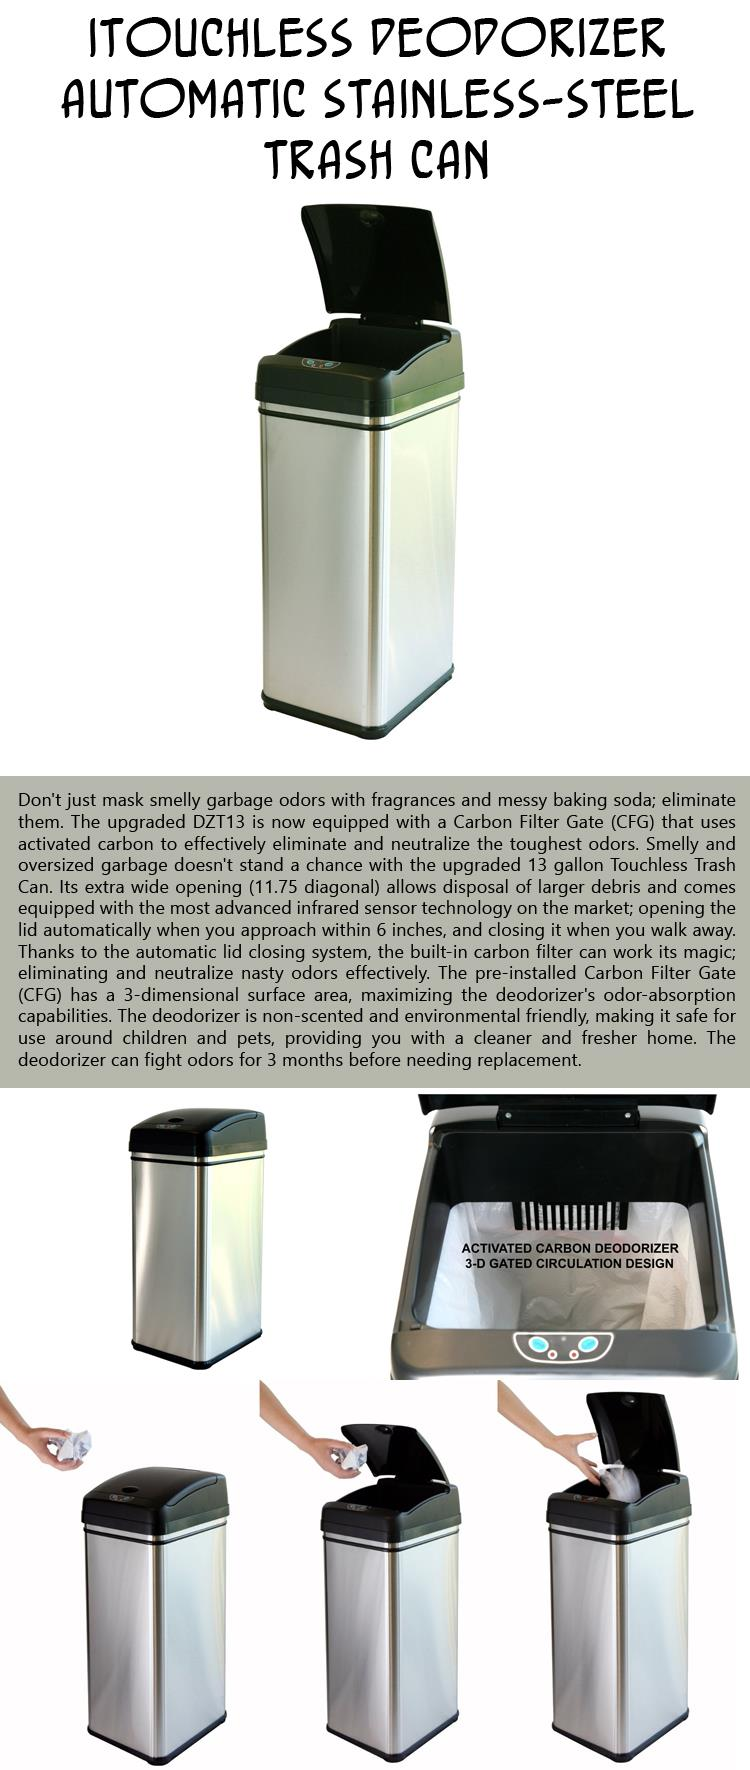 iTouchless Deodorizer Automatic Stainless-Steel Trash Can